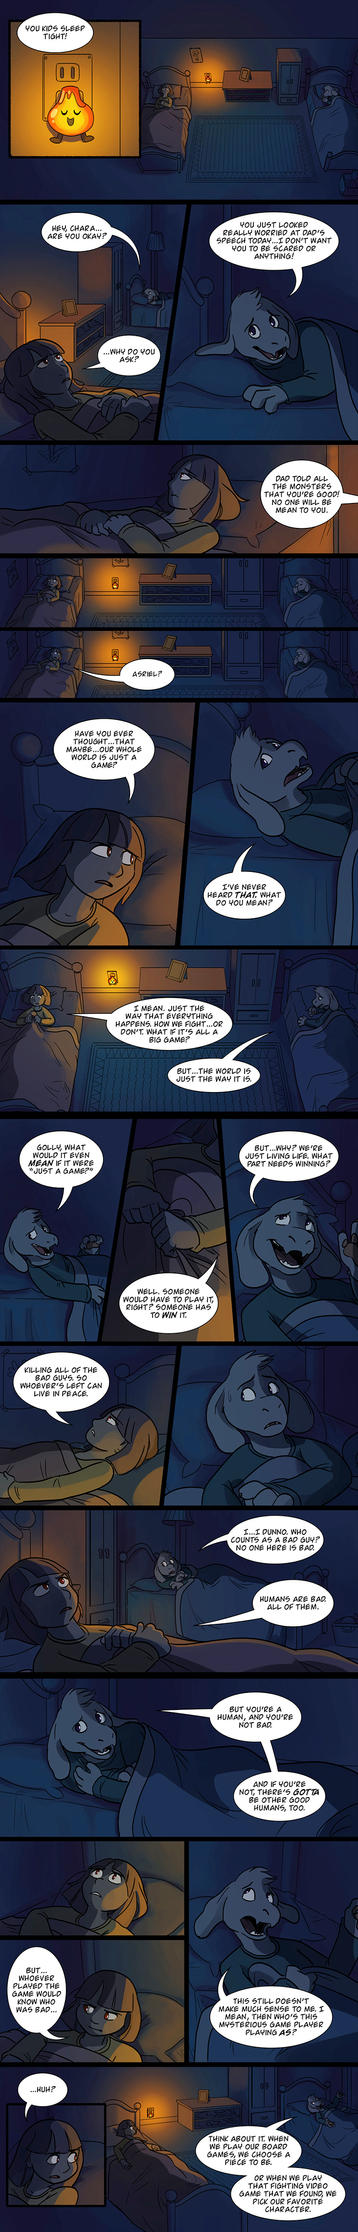 UT - Chara Origins - page 11 by LynxGriffin